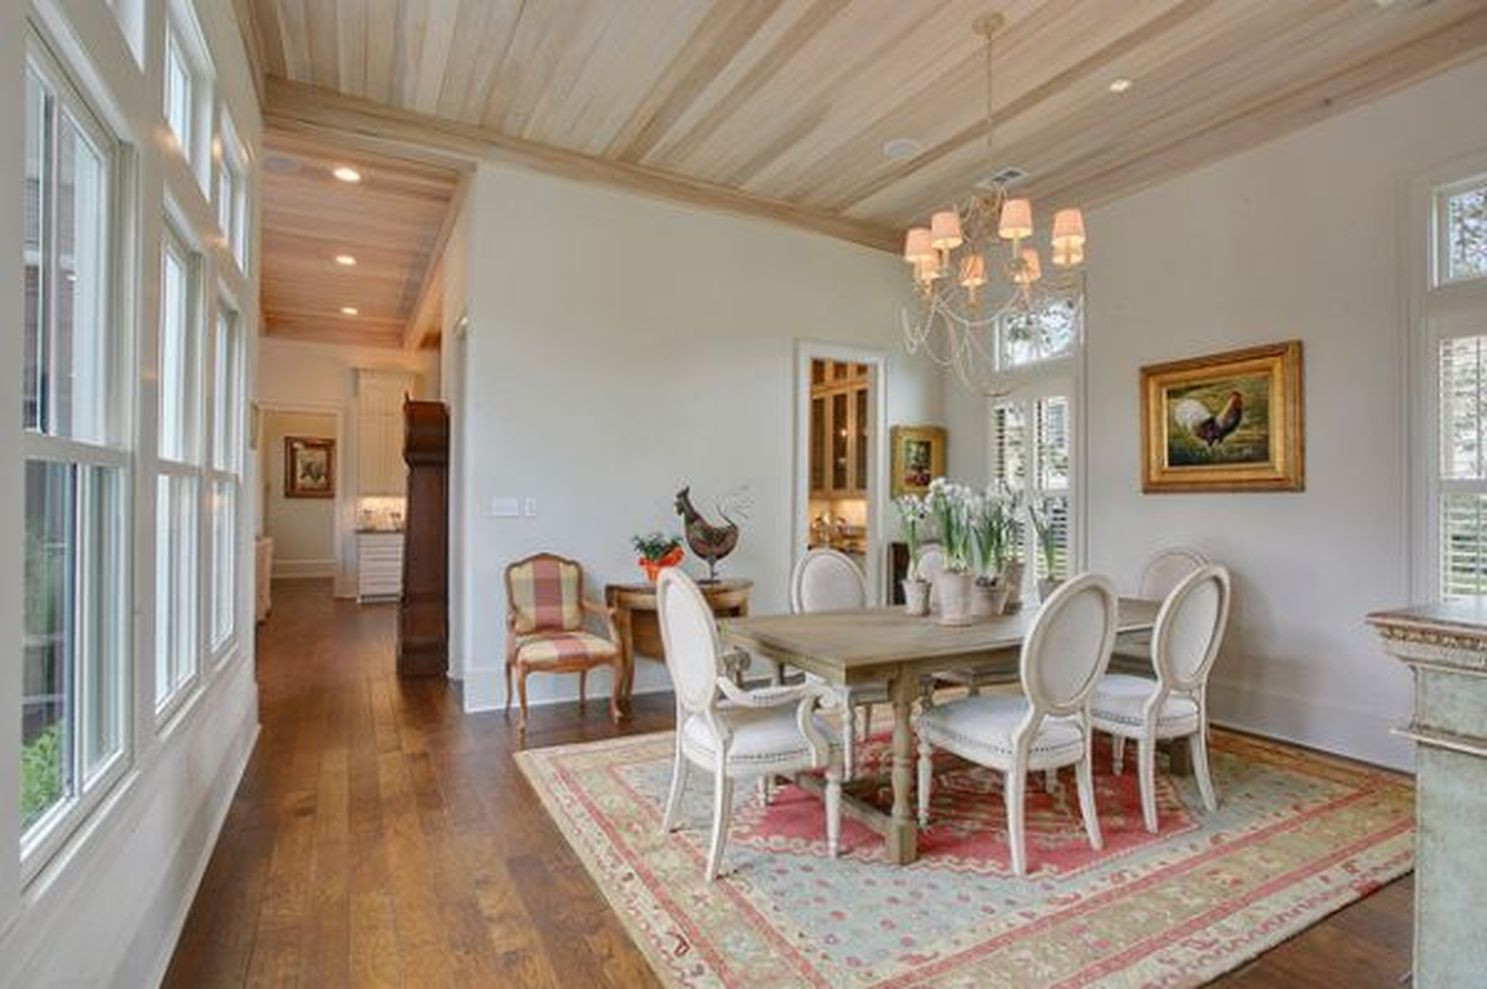 Best ideas about Rugs For Dining Room . Save or Pin 59 Stunning Dining Room Area Rug Ideas to Makes Your Home Now.